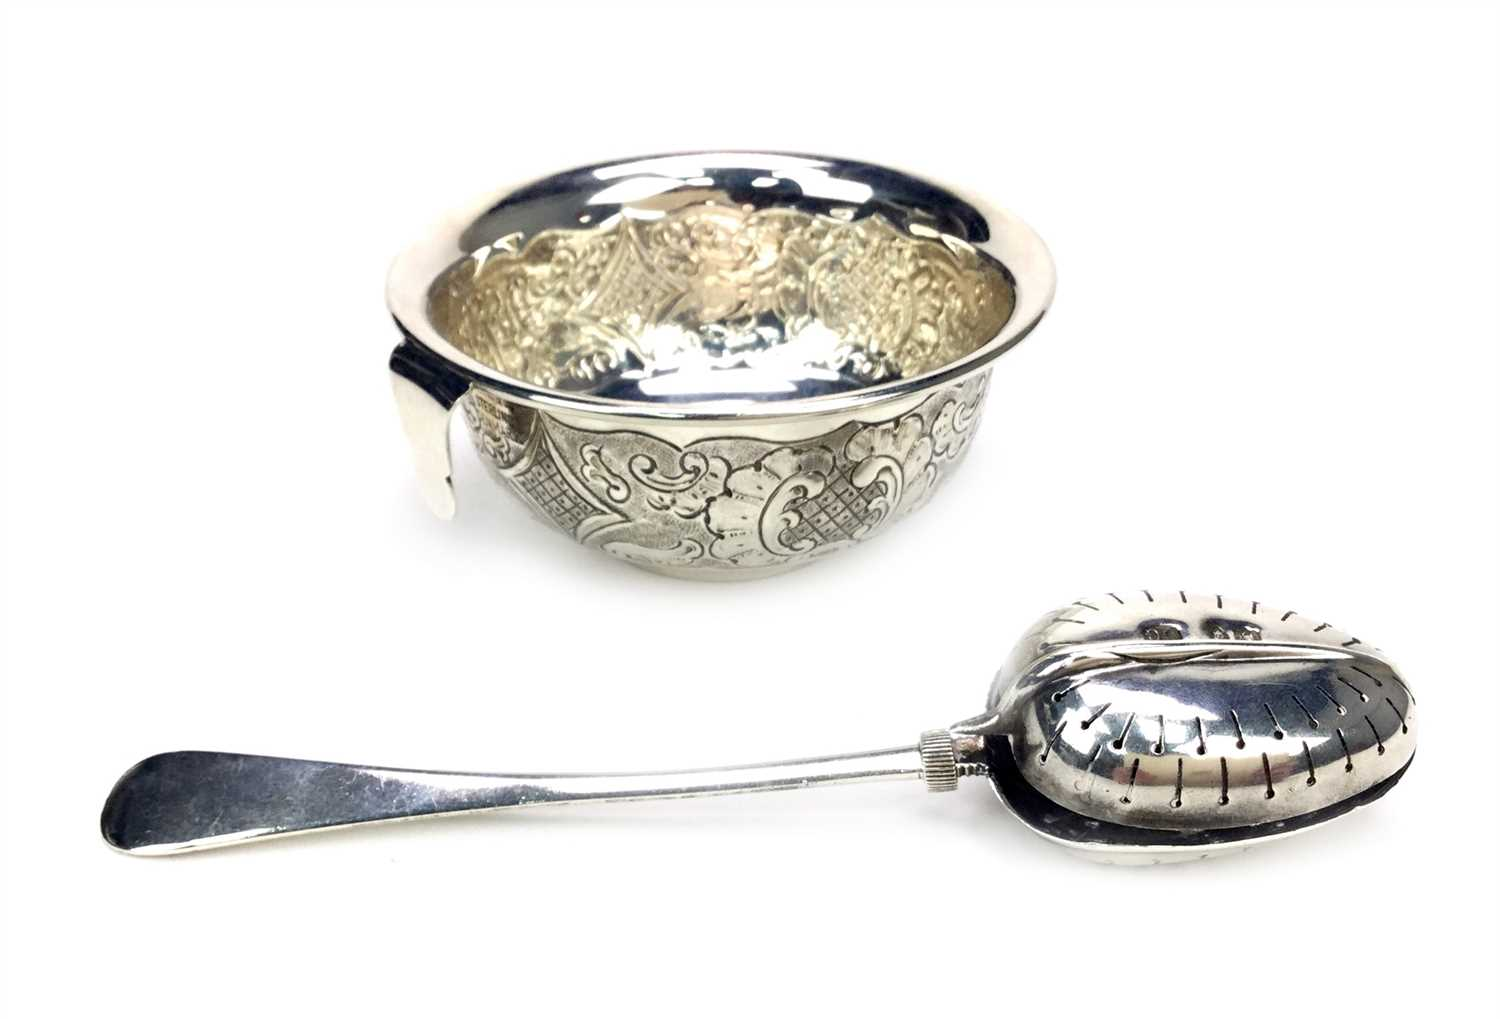 Lot 813 - A TIFFANY SILVER TEA STRAINER AND A TEAETTE TEA INFUSER